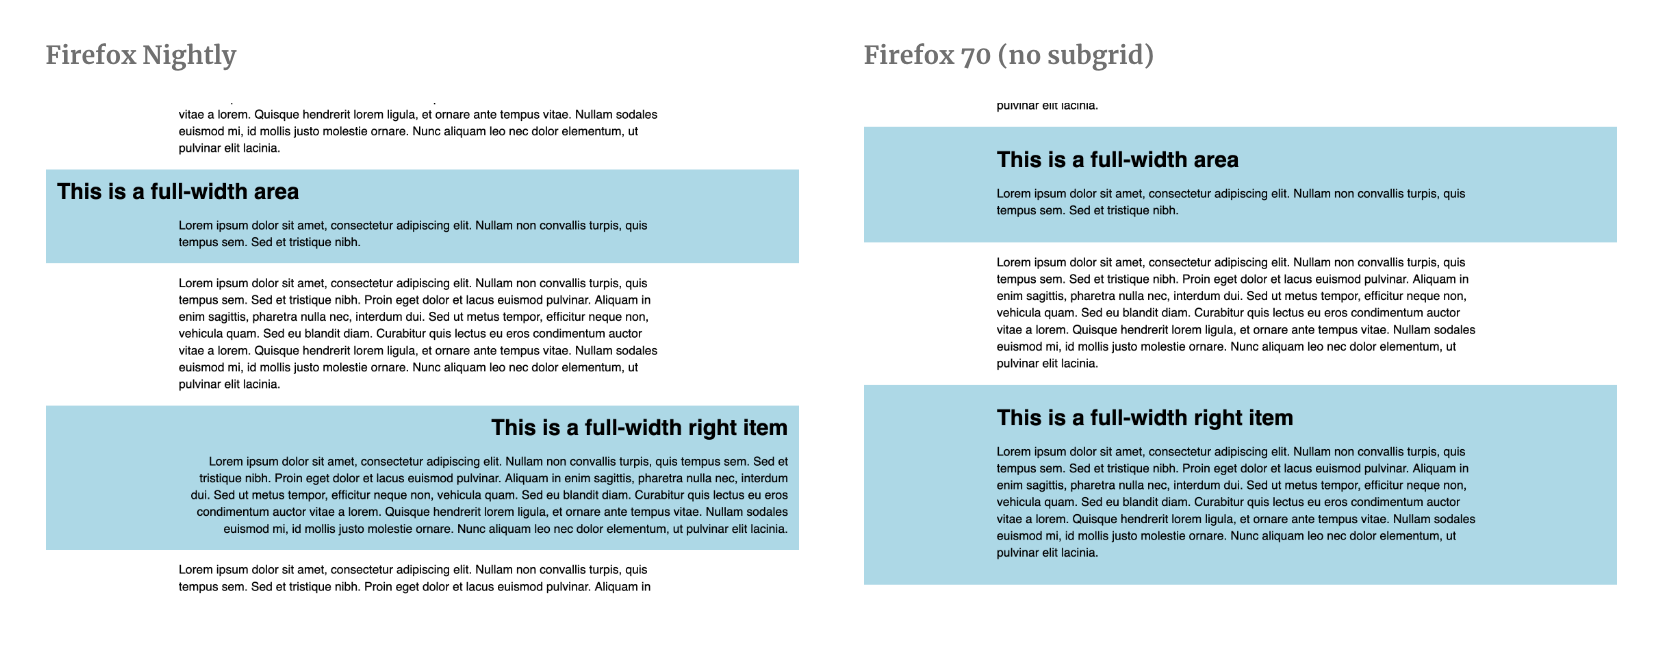 A comparison of Firefox Nightly vs Firefox 70 and how this support query looks